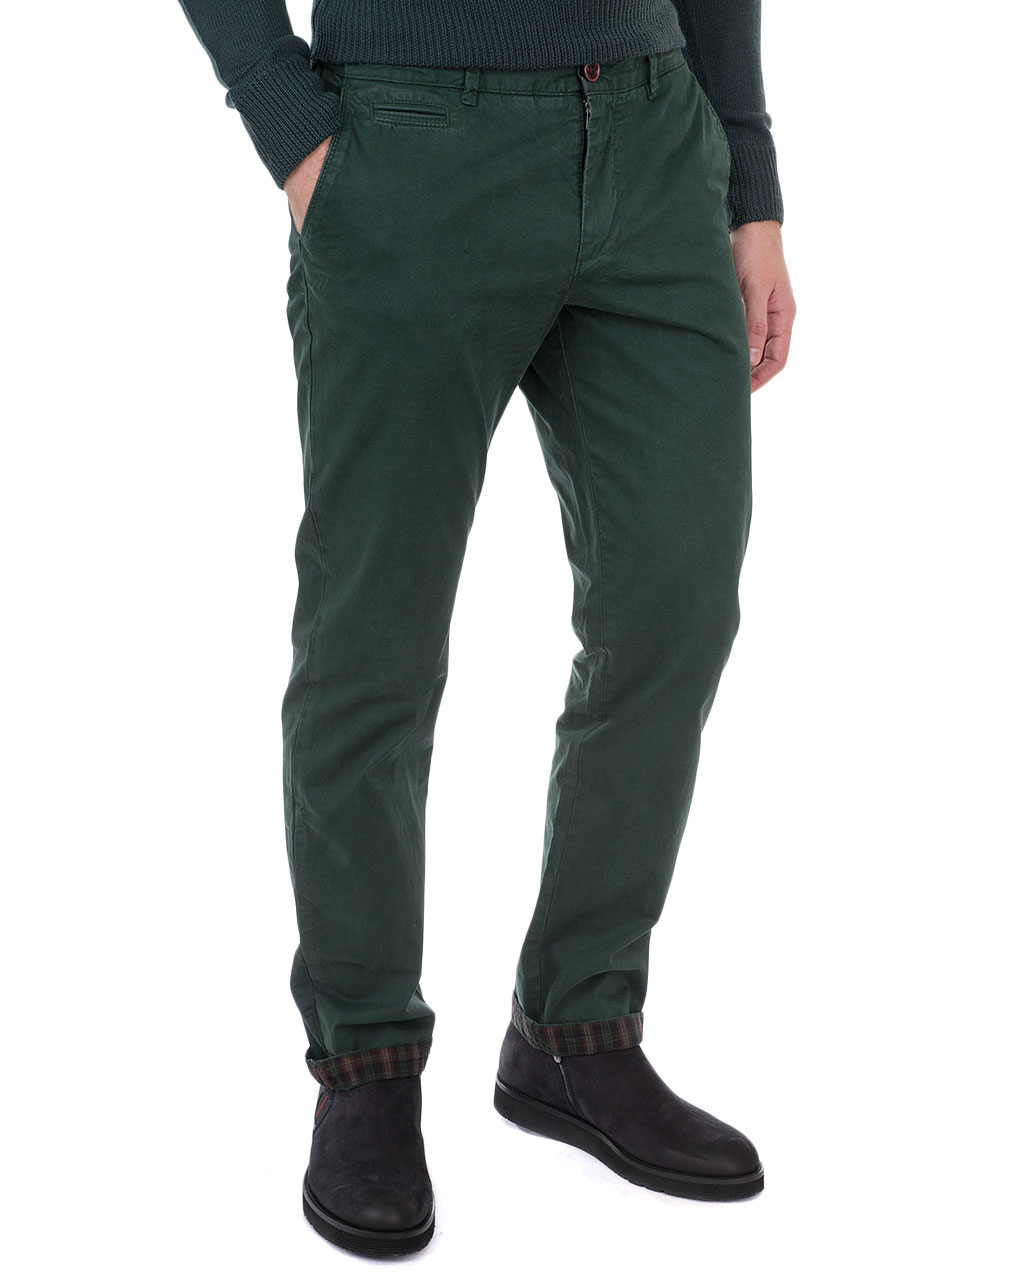 Men's trousers 140501520-Shane-bretish  (3)